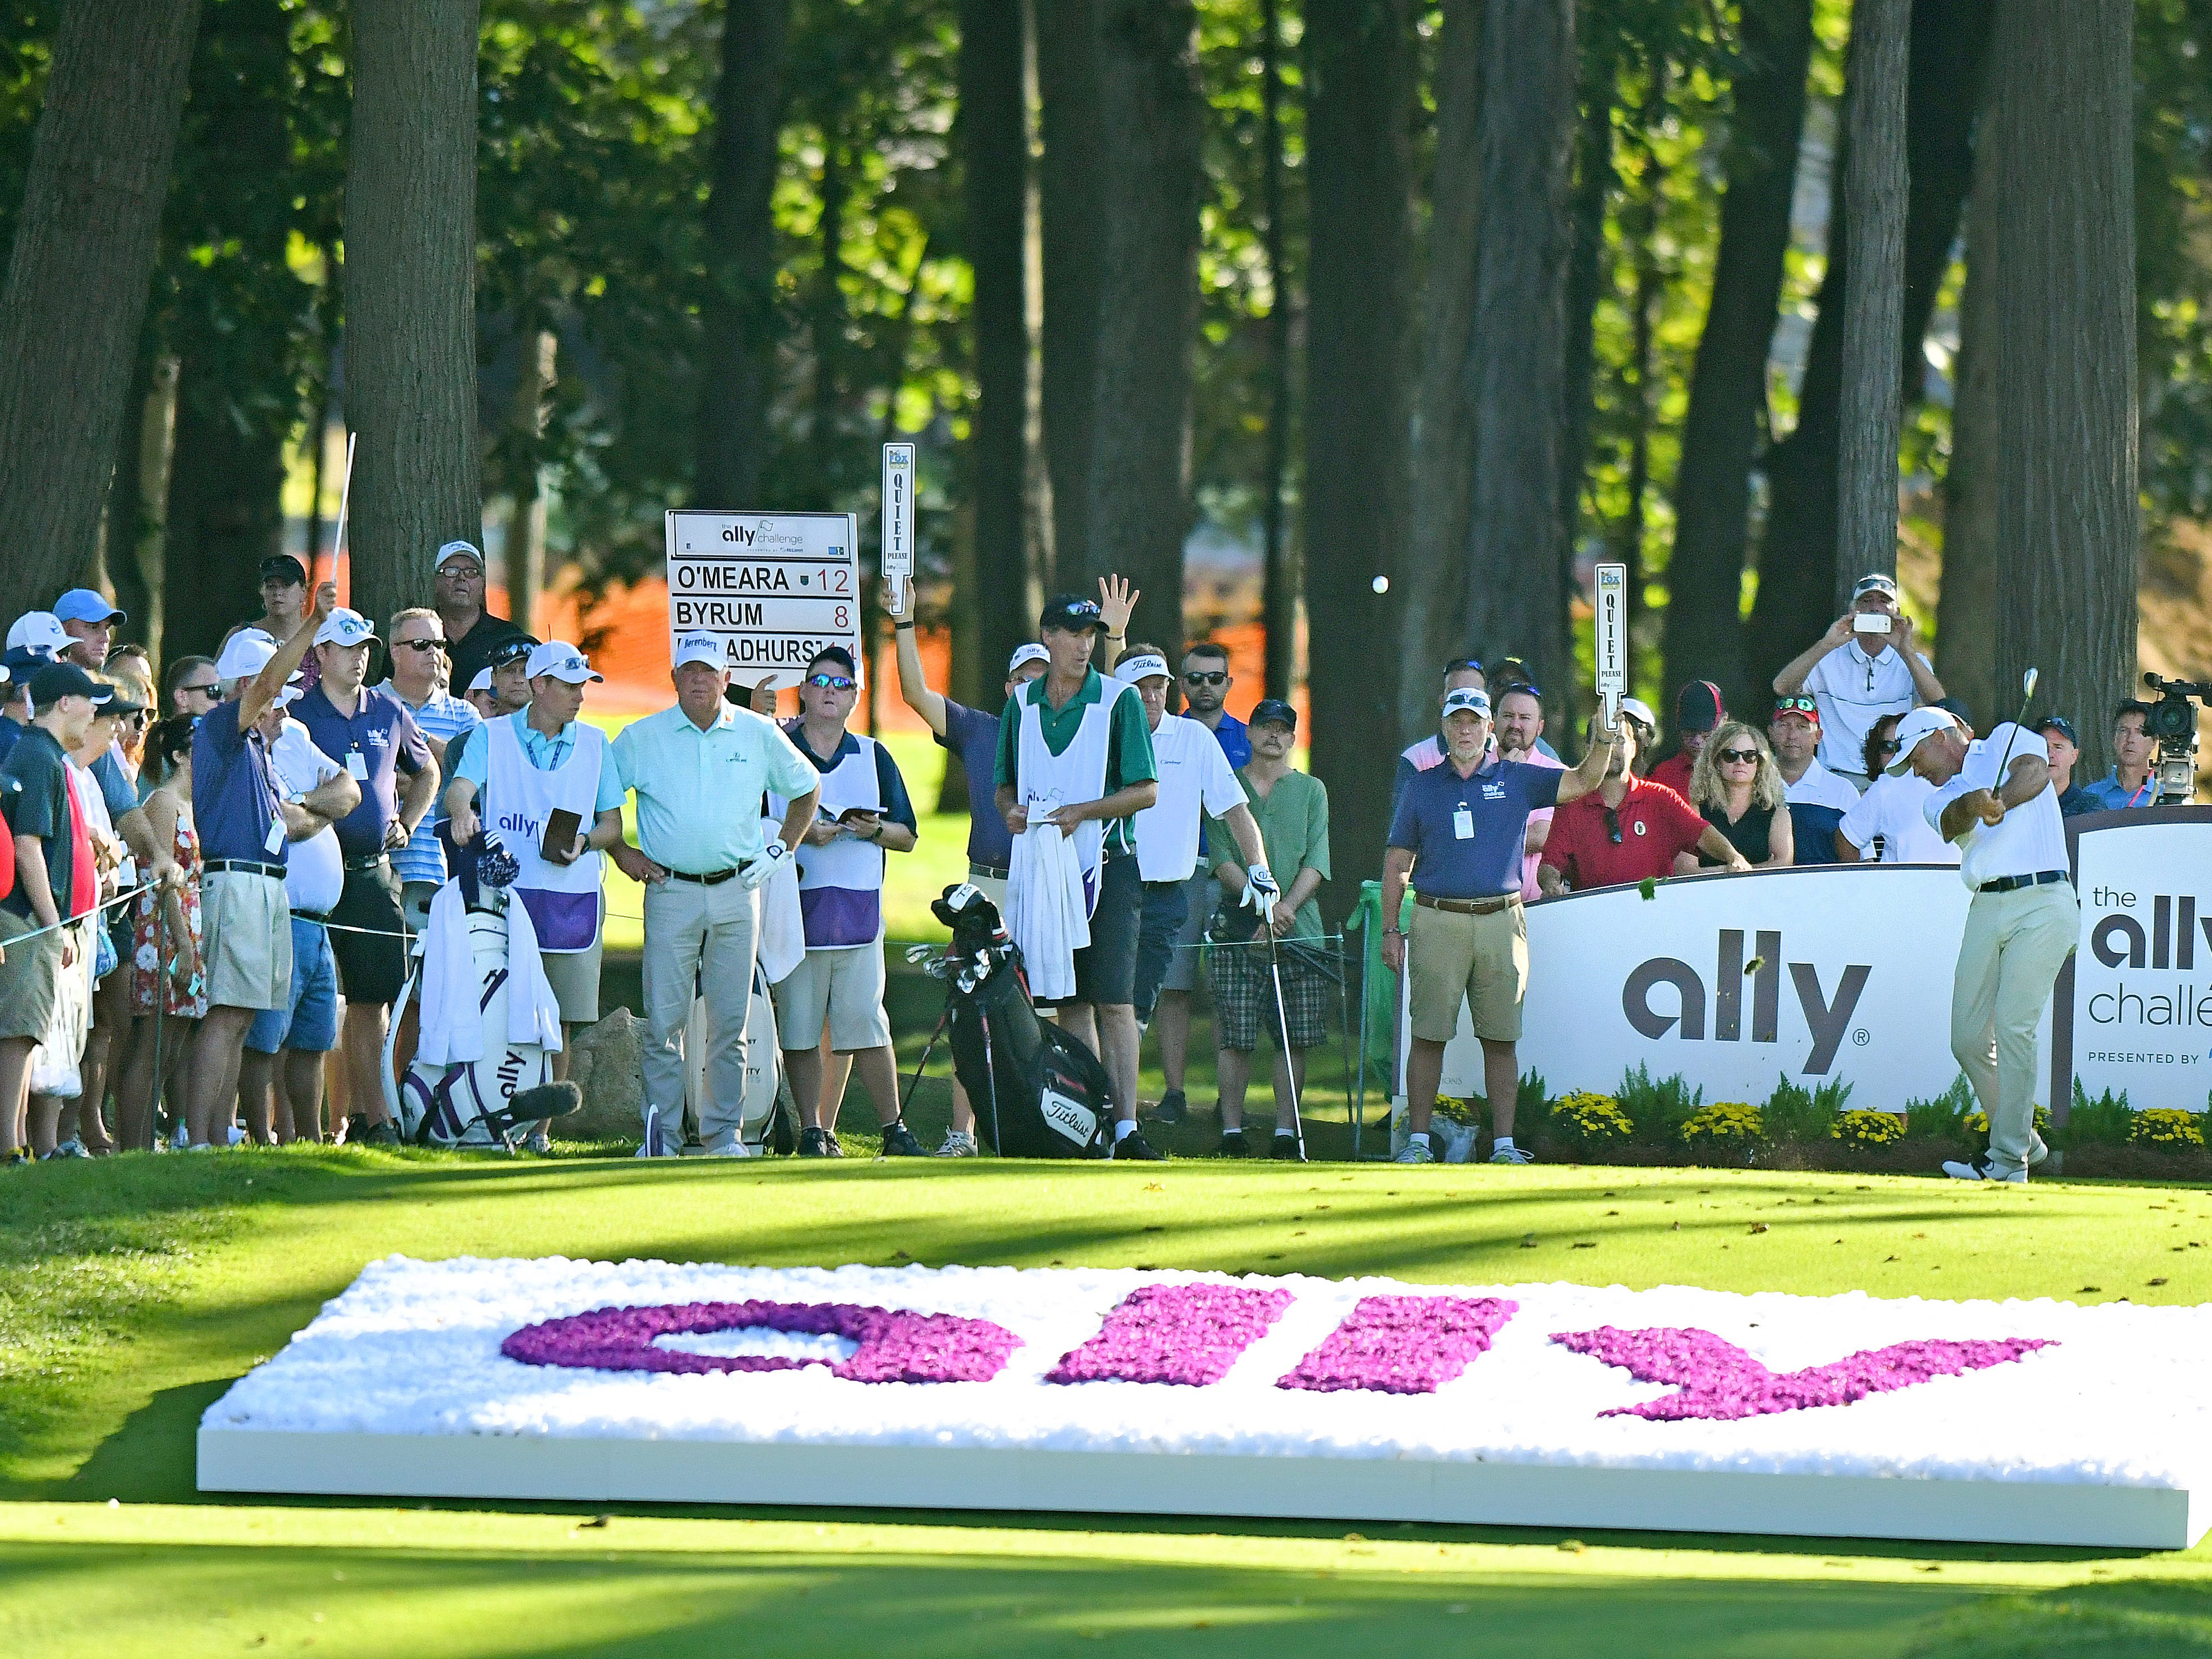 The gallery watches as Paul Broadhurst hits his tee shot on the 17th hole.